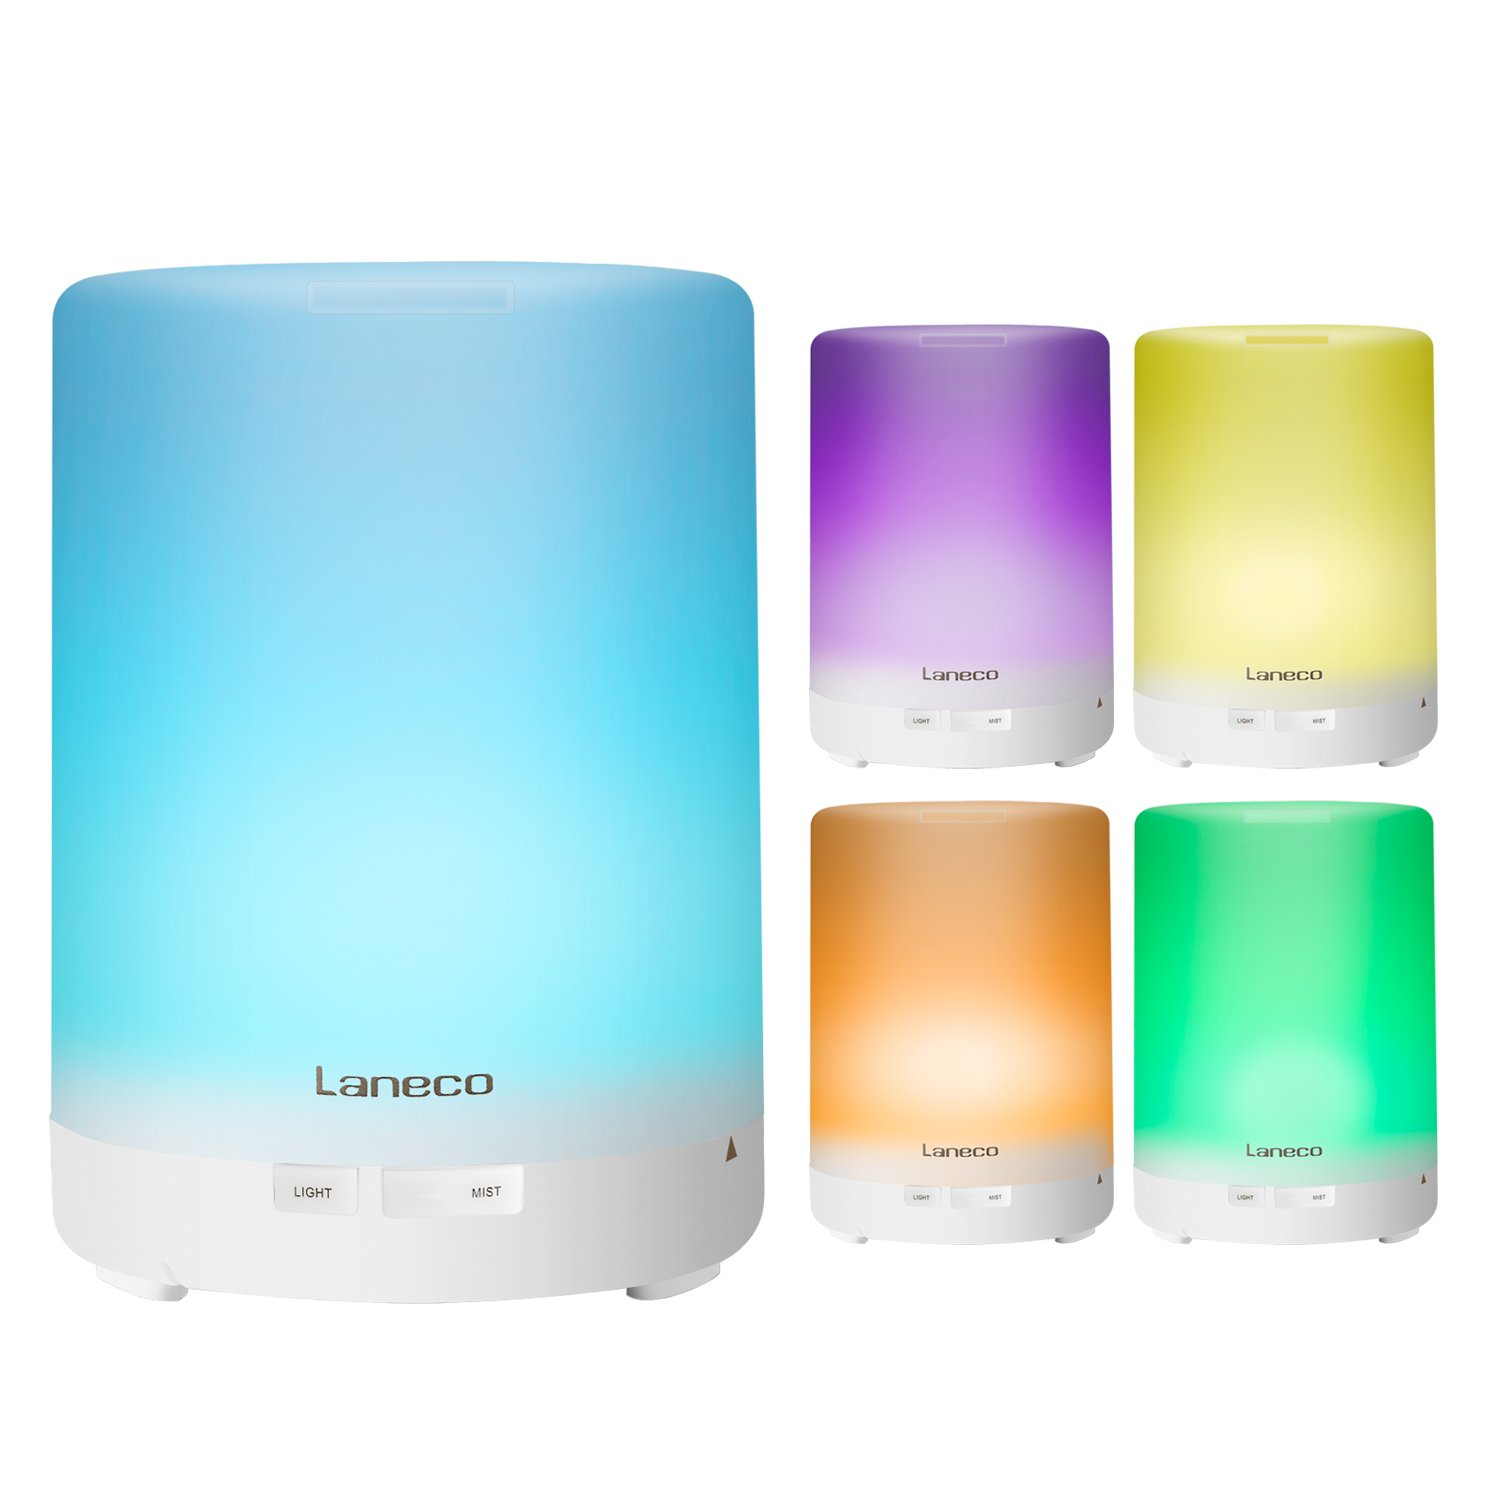 ( Essential Oil Diffuser ) Laneco 300ml Portable Cool Mist Aroma Humidifier ( Ultrasonic Aromatherapy And Waterless Auto off ) With 7 Color Changing LED Light For Baby Room Home Bedroom Office Yoga